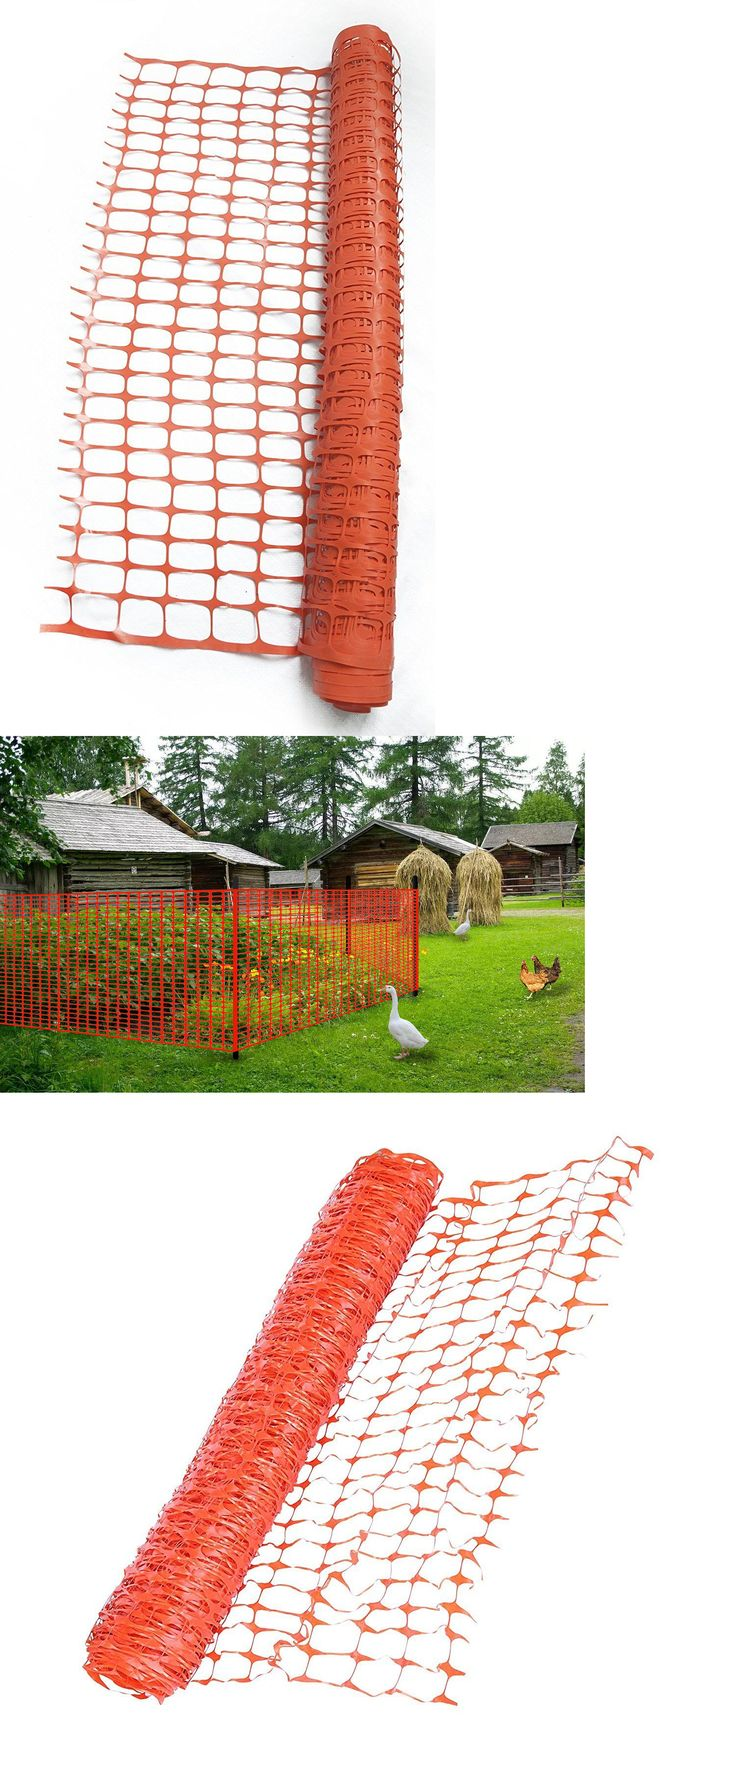 Other Garden Fencing 177033: V Proteck Safety Fence, Snow Fence, Safety Barrier, Orange,39 X82 -> BUY IT NOW ONLY: $35.99 on eBay!